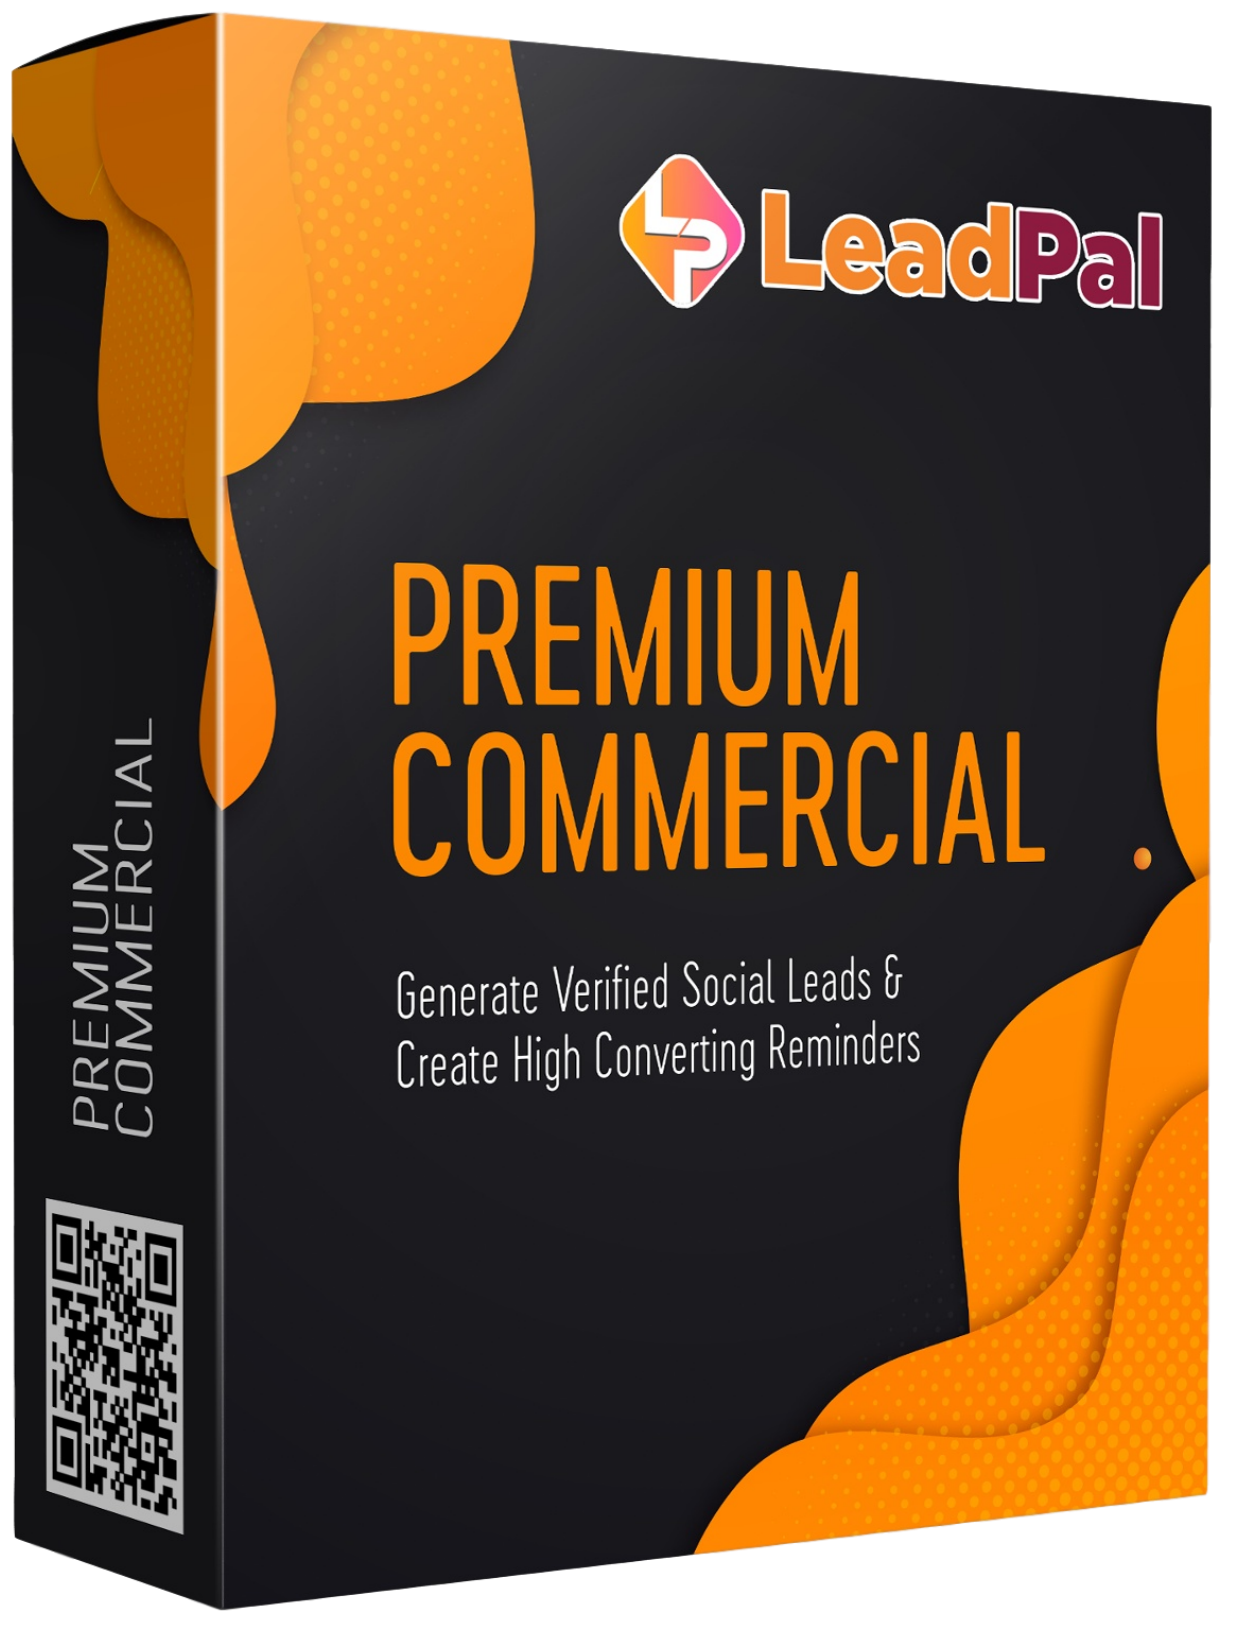 Leadpal Reloaded Review